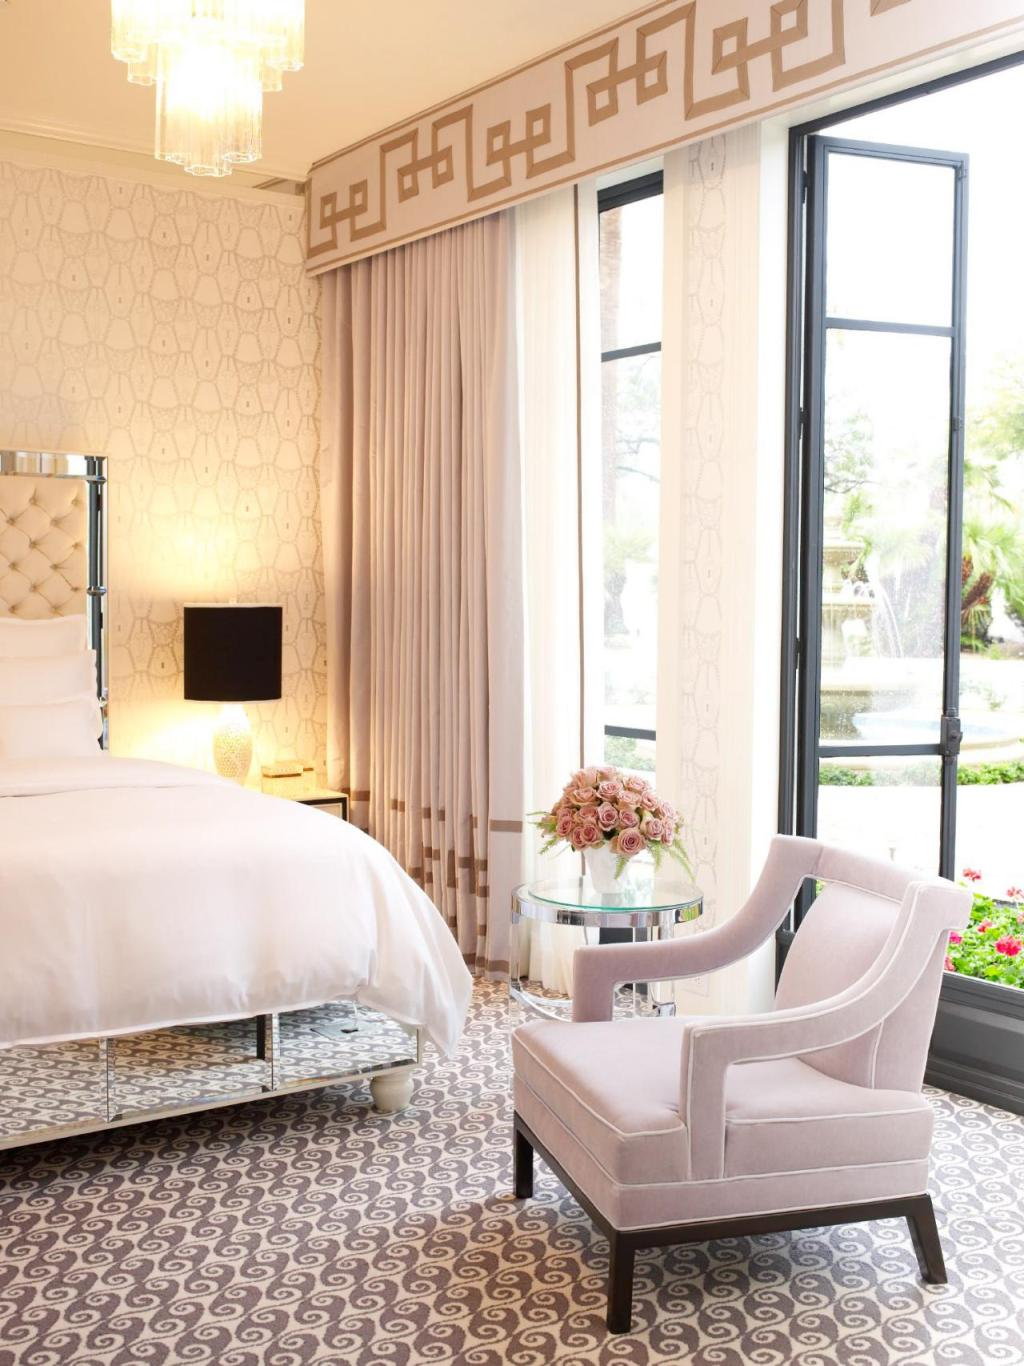 4 Tips To Decorate Beautiful Window Curtains Interior Design on Beautiful Bedroom Curtains  id=91036